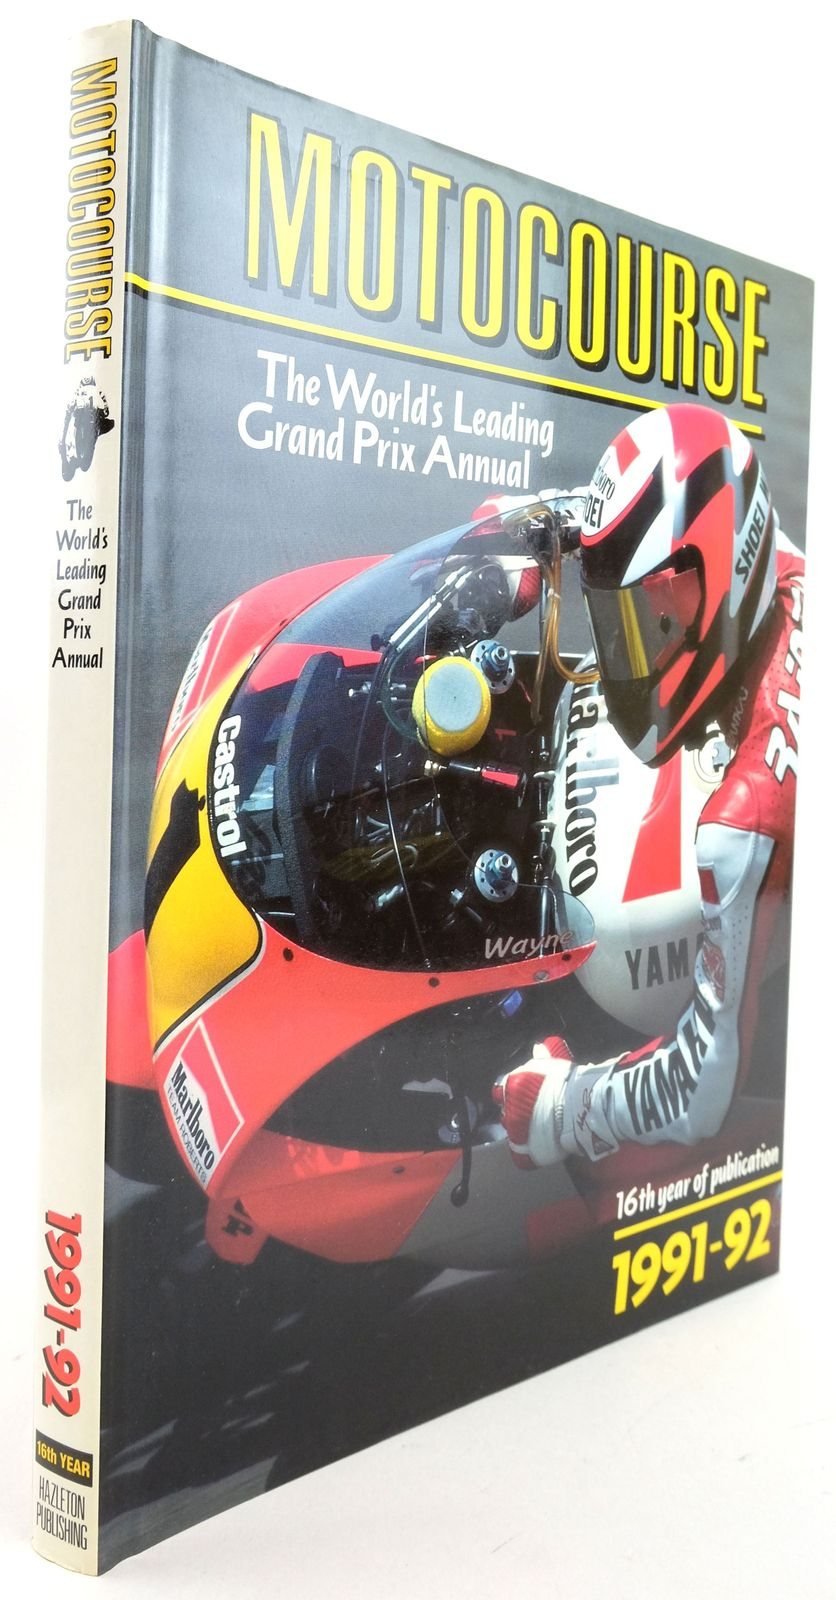 Photo of MOTOCOURSE 1991-92 published by Hazleton Publishing (STOCK CODE: 1819881)  for sale by Stella & Rose's Books